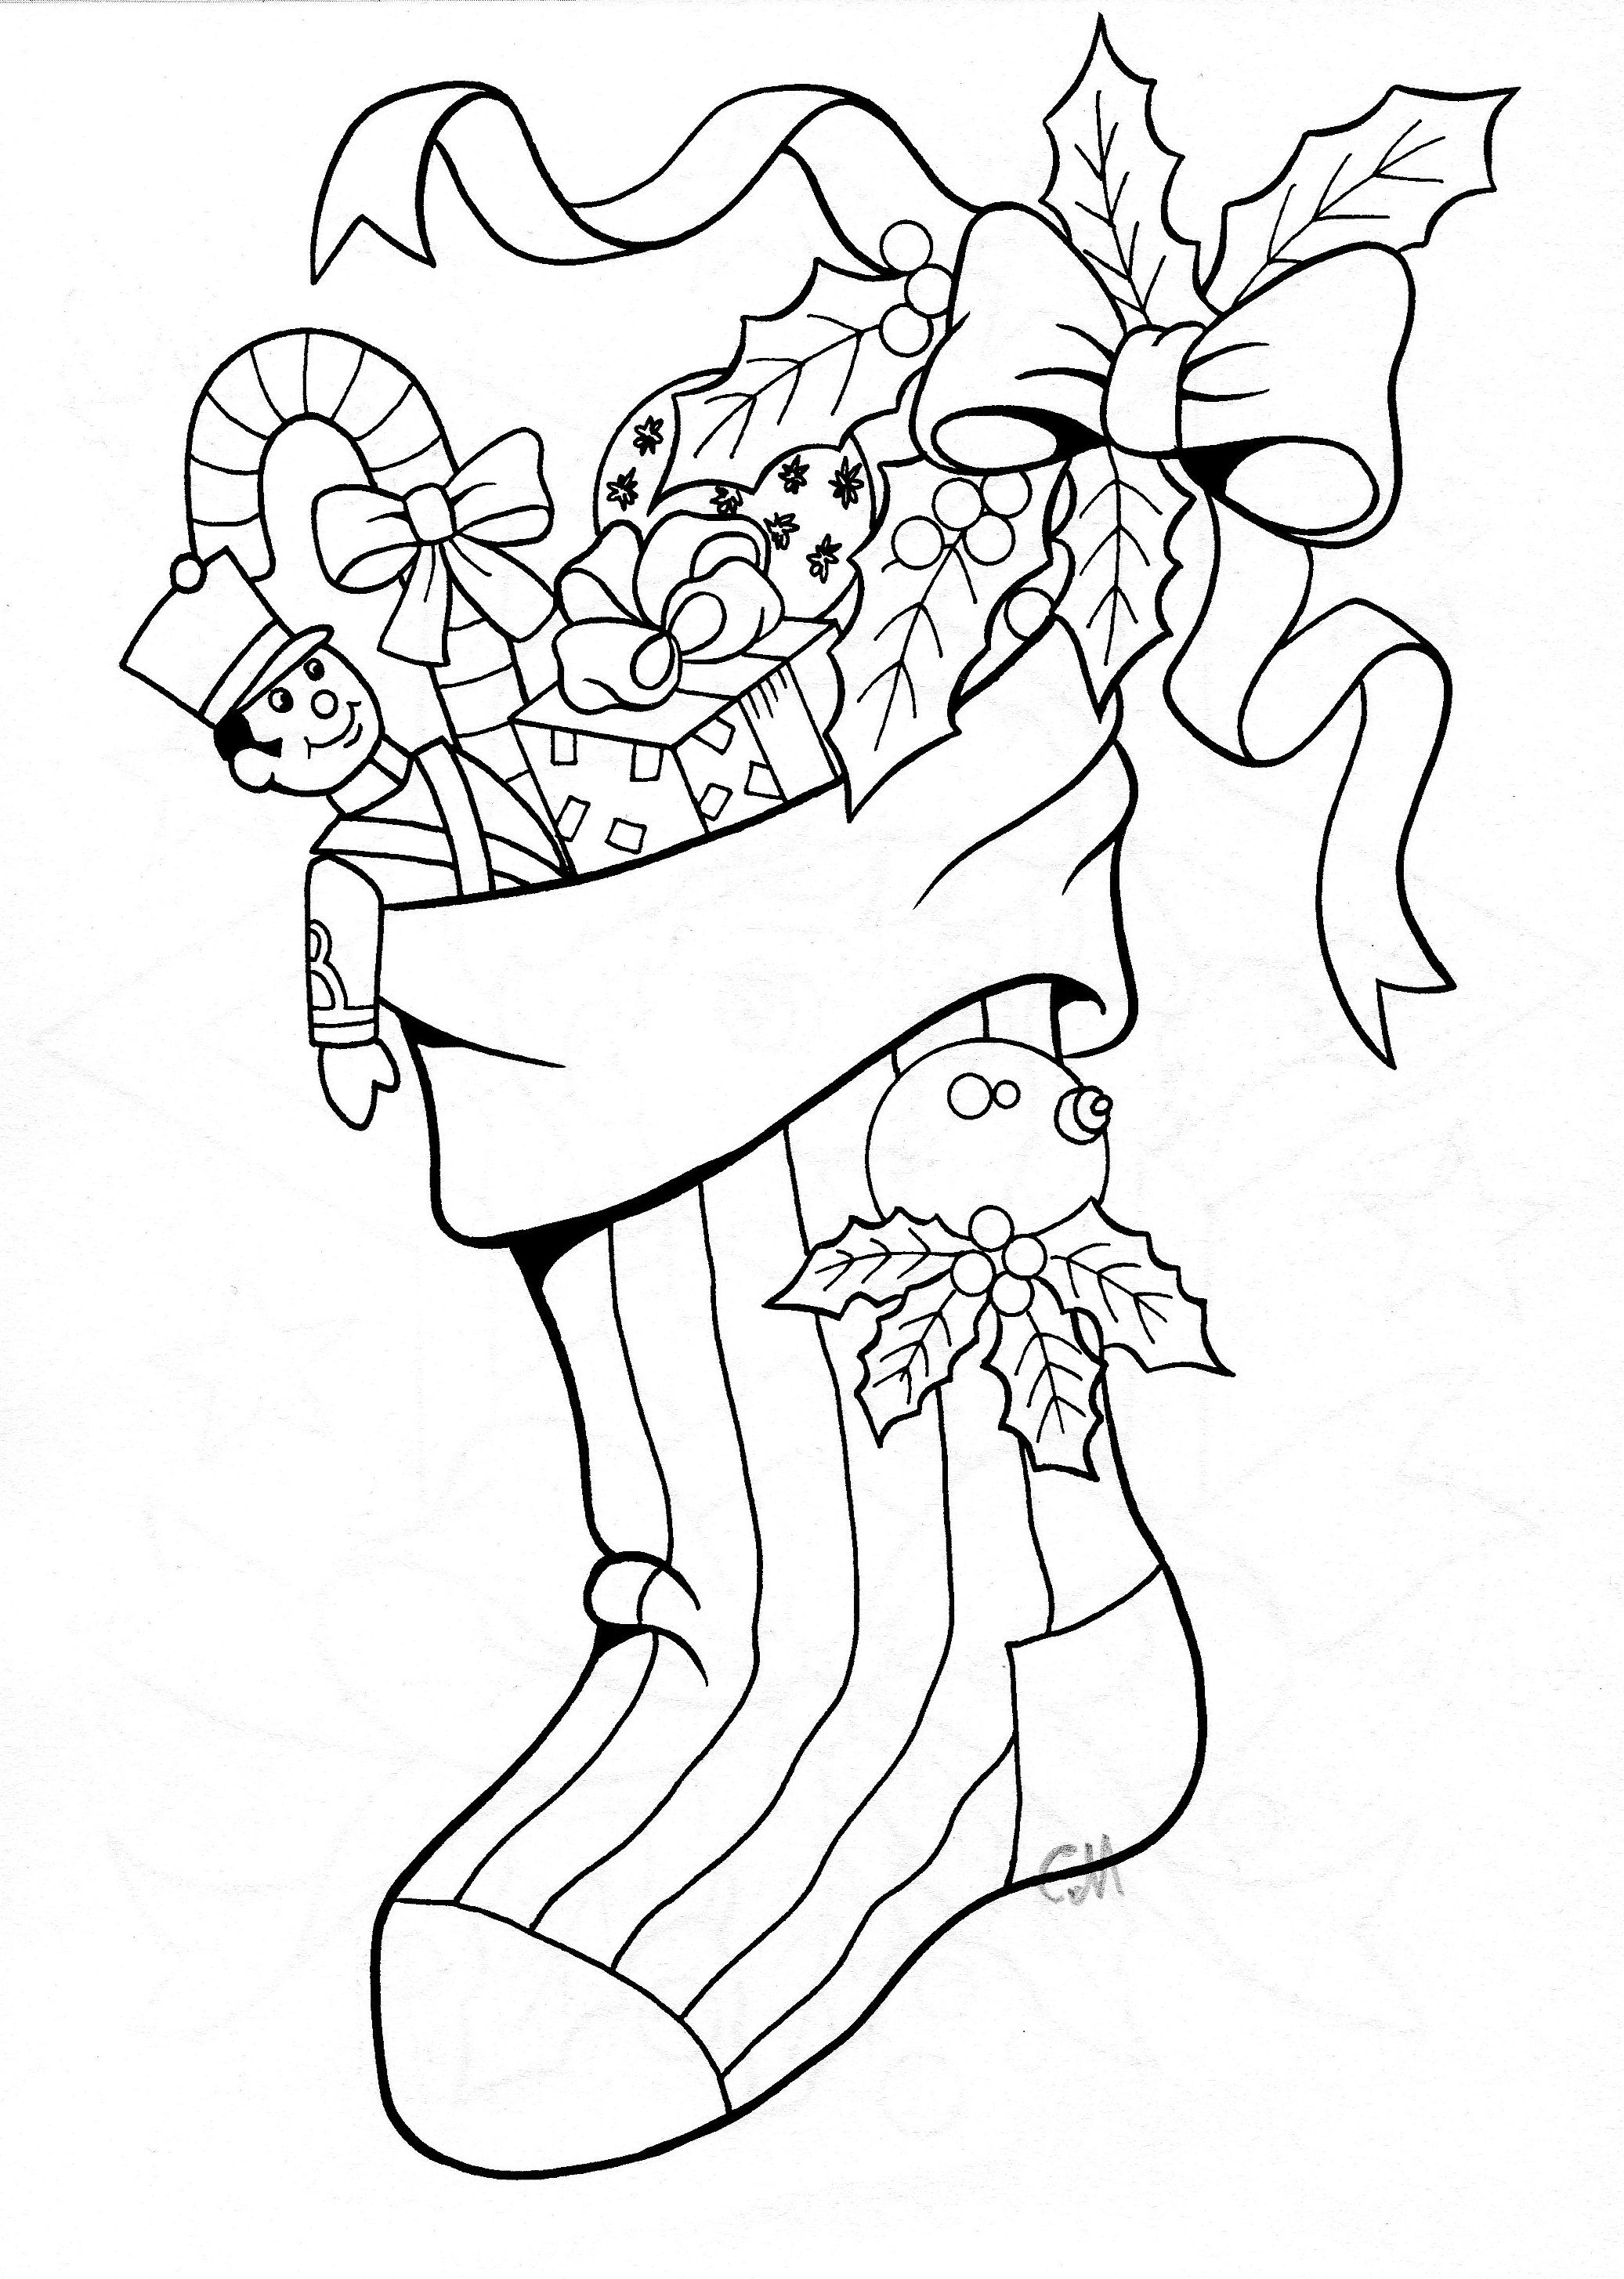 stocking coloring pages - photo#26